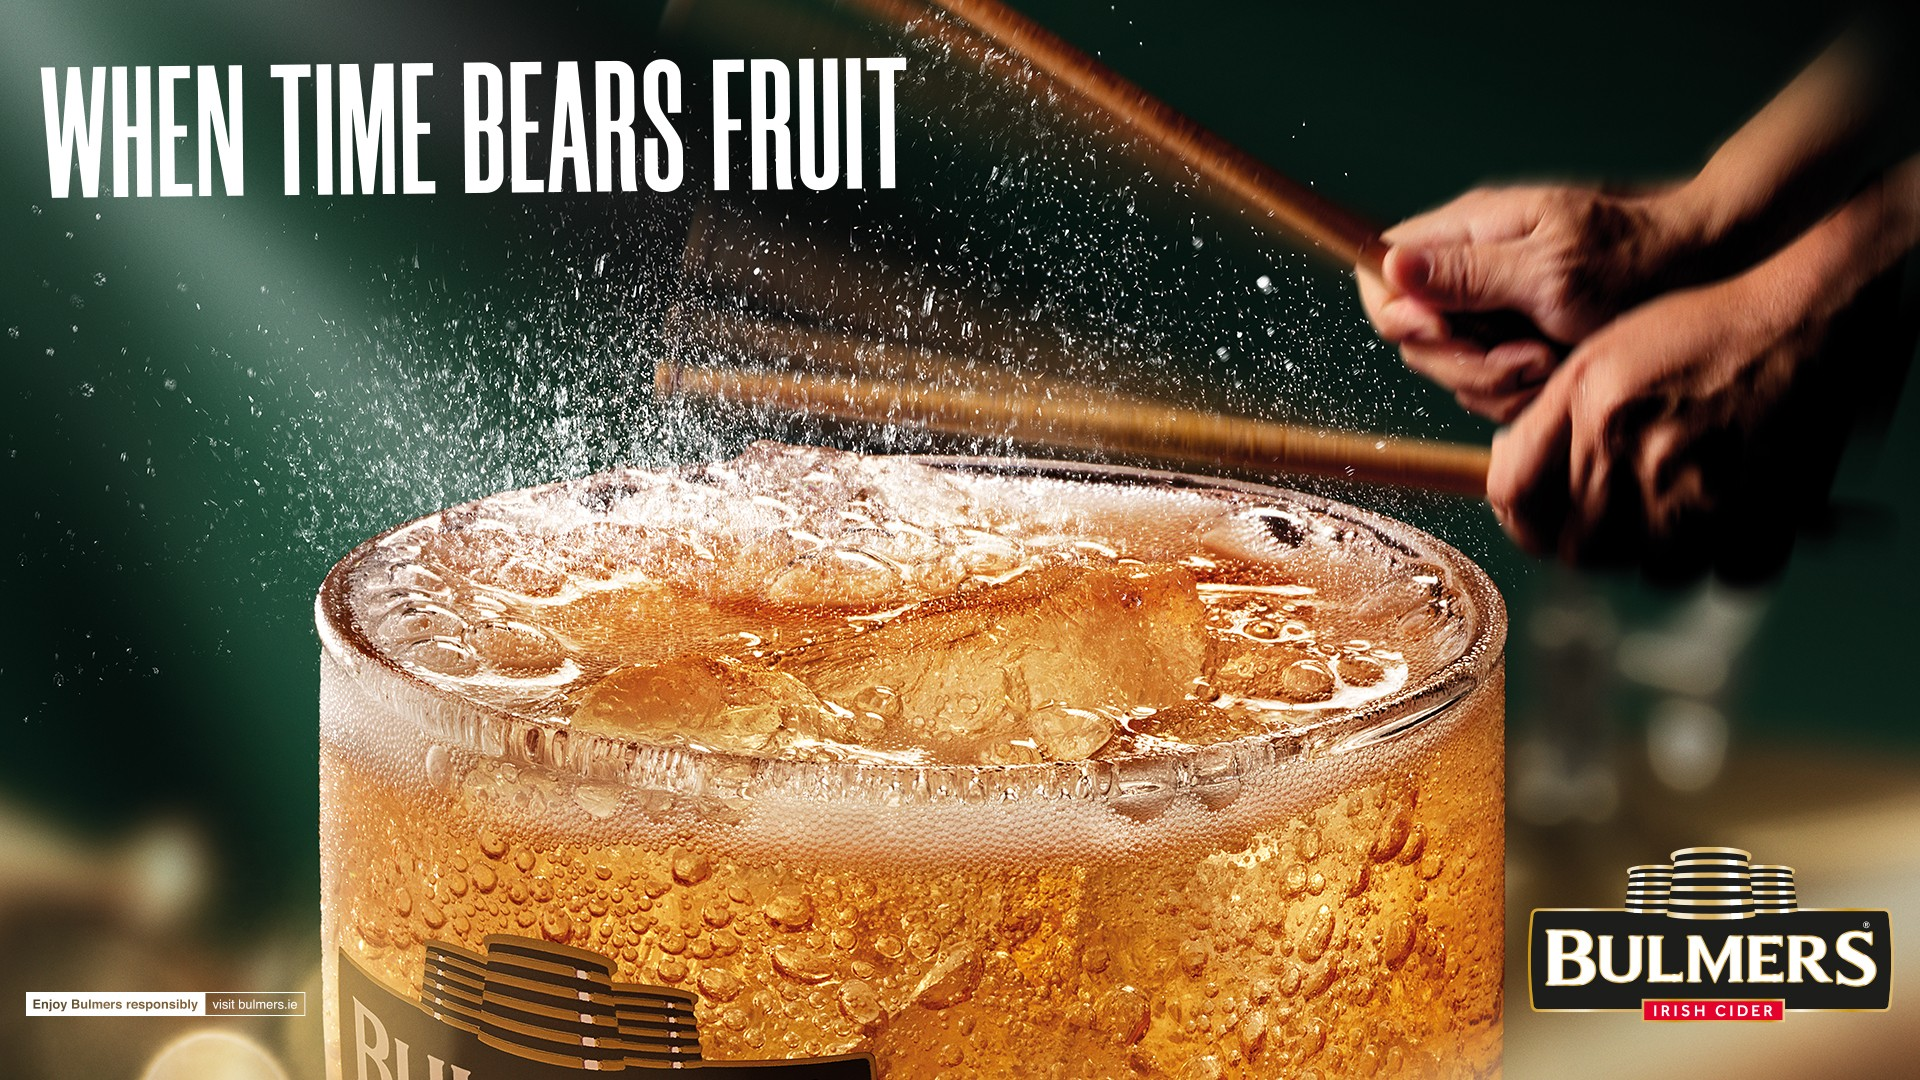 Bulmers Launches New Campaign: The Drum – When Time Bears Fruit photo